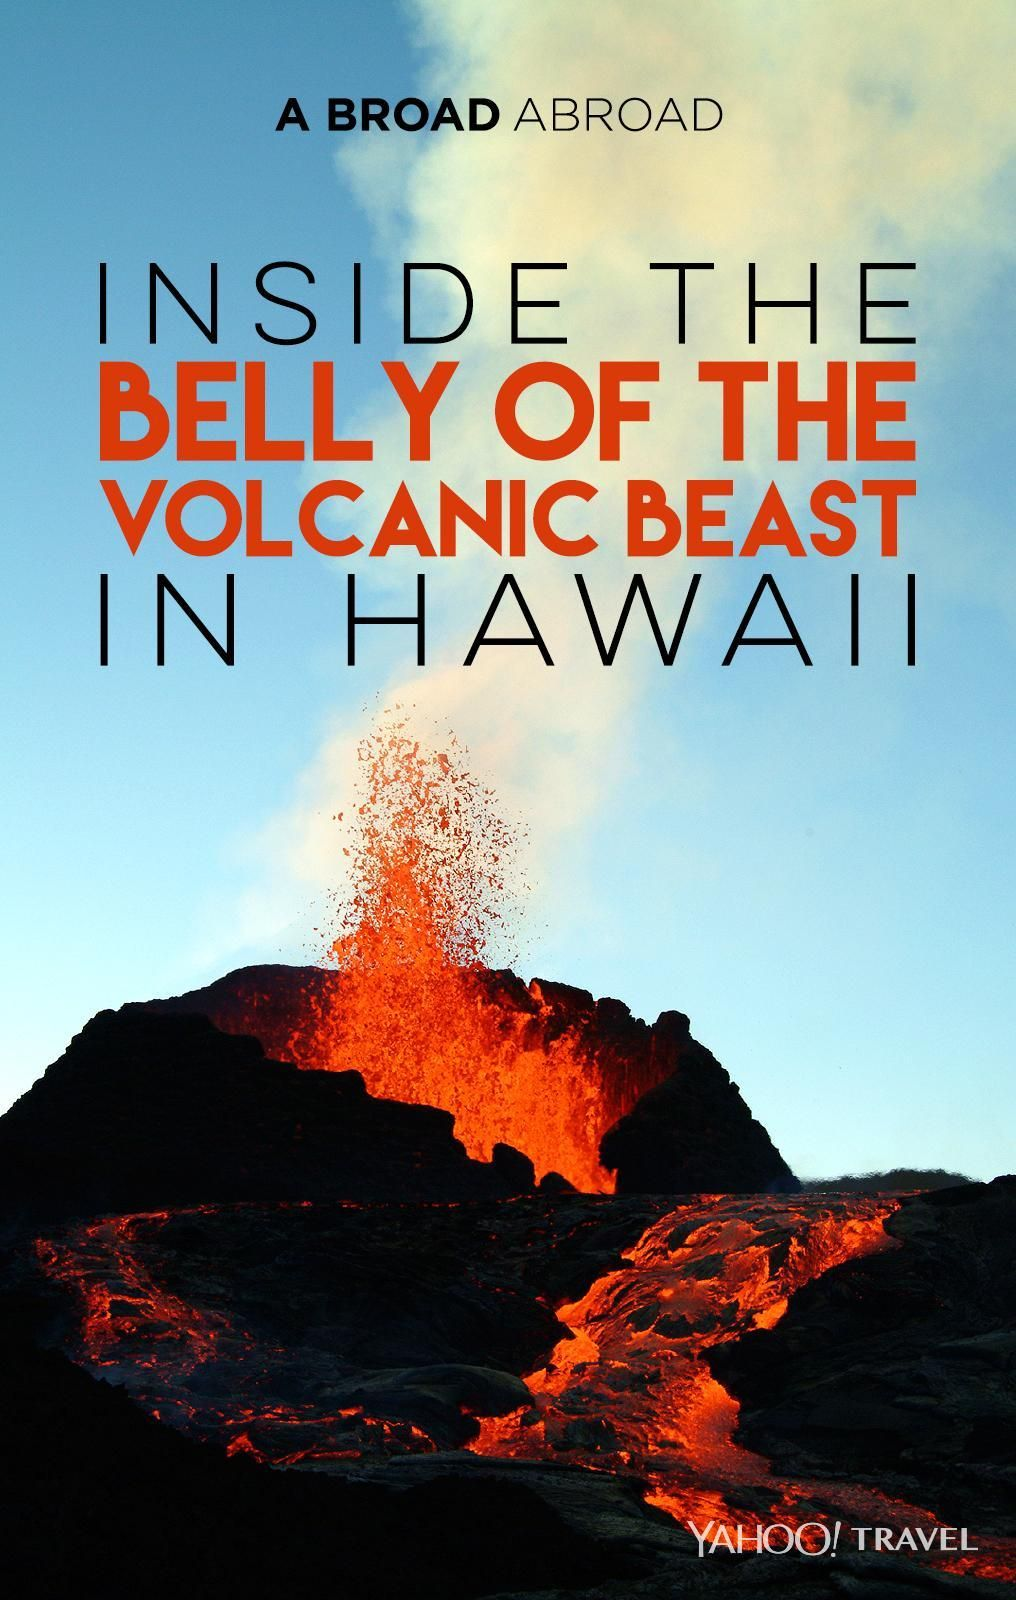 Hawaii is the land of Pele, the volcano goddess. InsideVolcanoes National Park is the Kilauea volcano, the most active volcano on earth, which, according to the National Park Service, produces 250,000 to 650,000 cubic yards of lava per day — enough to resurface a 20-mile-long two-lane road daily. Related: WATCH: The Magic of Night Swimming With Hawaii's Gentle Giants The lava ate this road for lunch.(Photo: Paula Froelich) While it is beautiful — and the Kilauea Caldera glows every night…